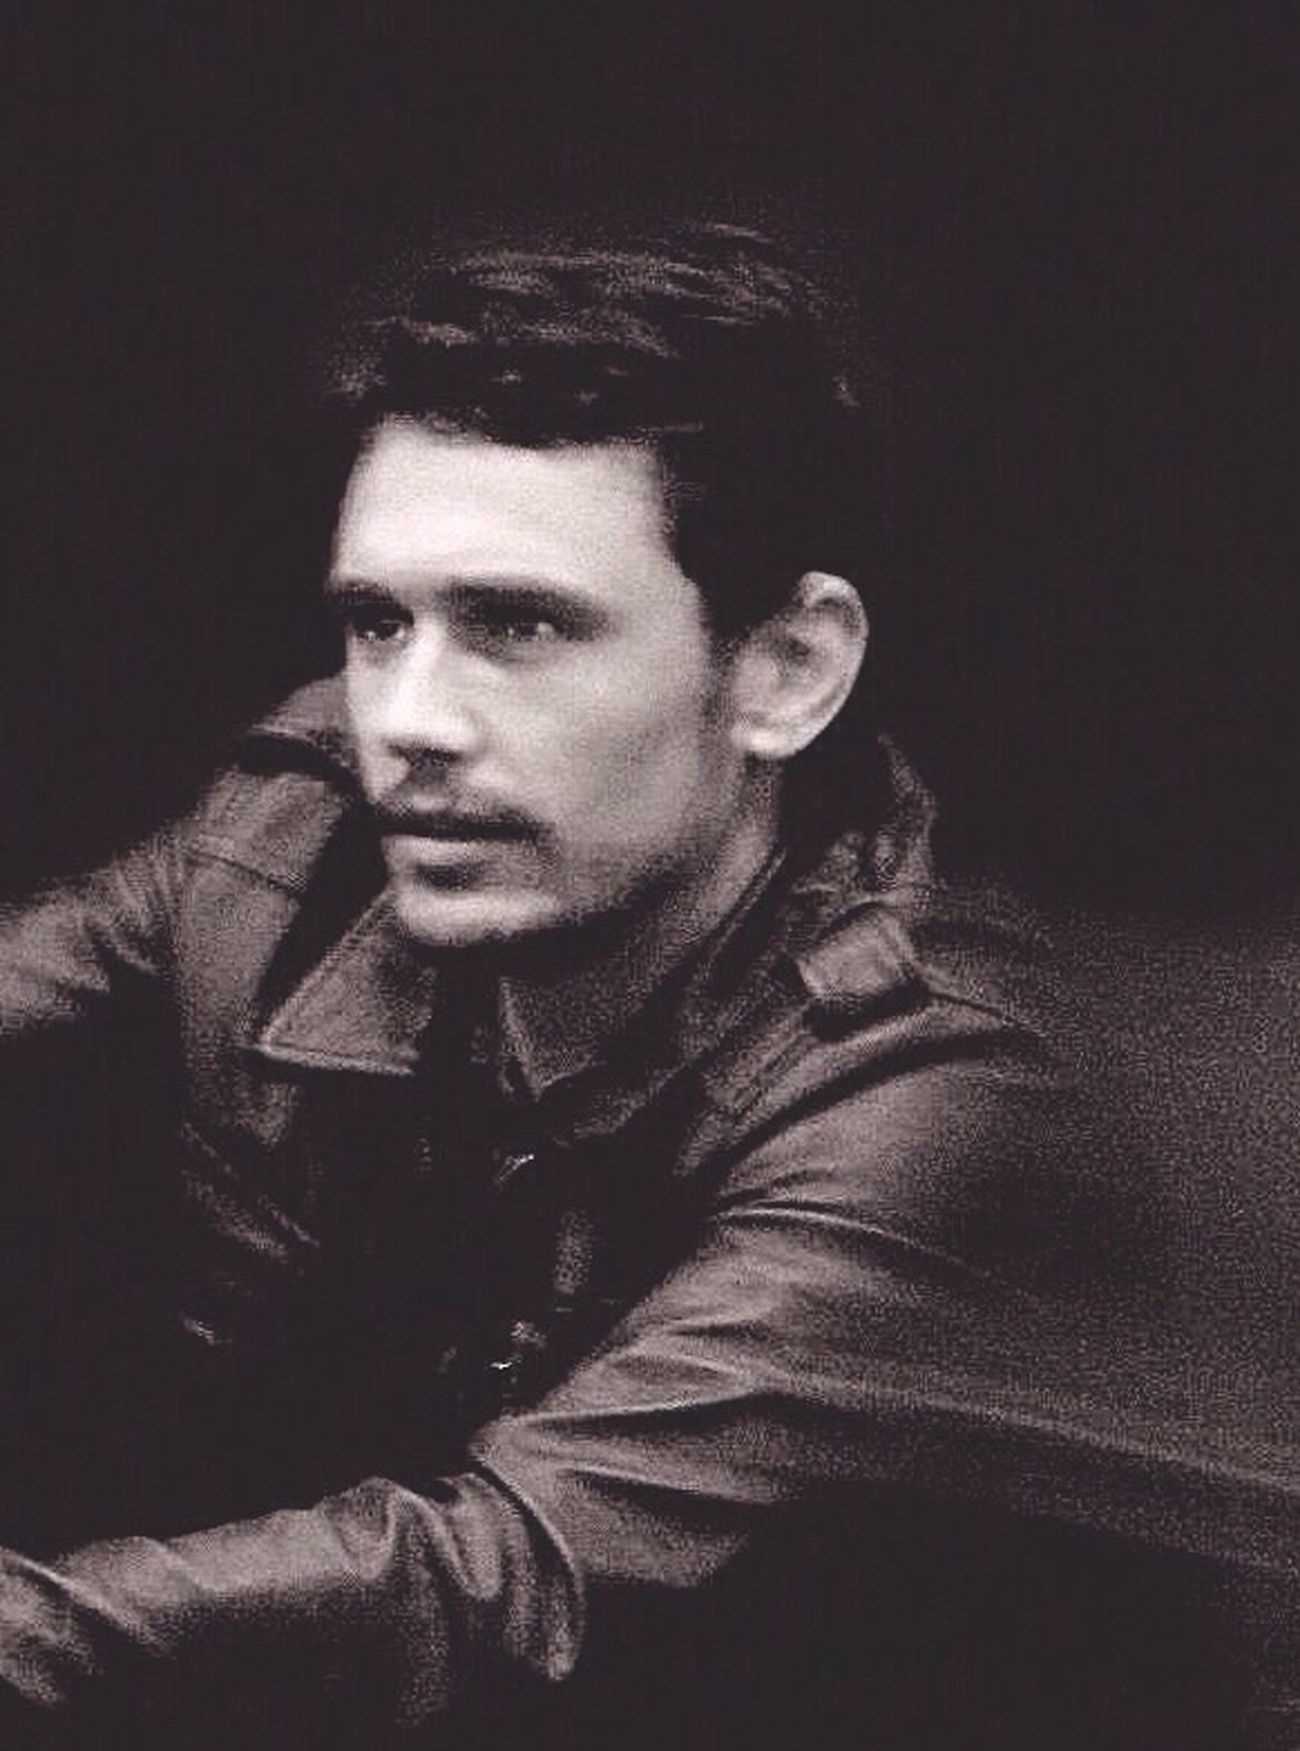 James Franco/NYC Celebrity Portraiture Blackandwhite Actor And Director Writer Painter Movement Leather Jacket Artist Canon Grainyiscool The Portraitist - 2016 EyeEm Awards